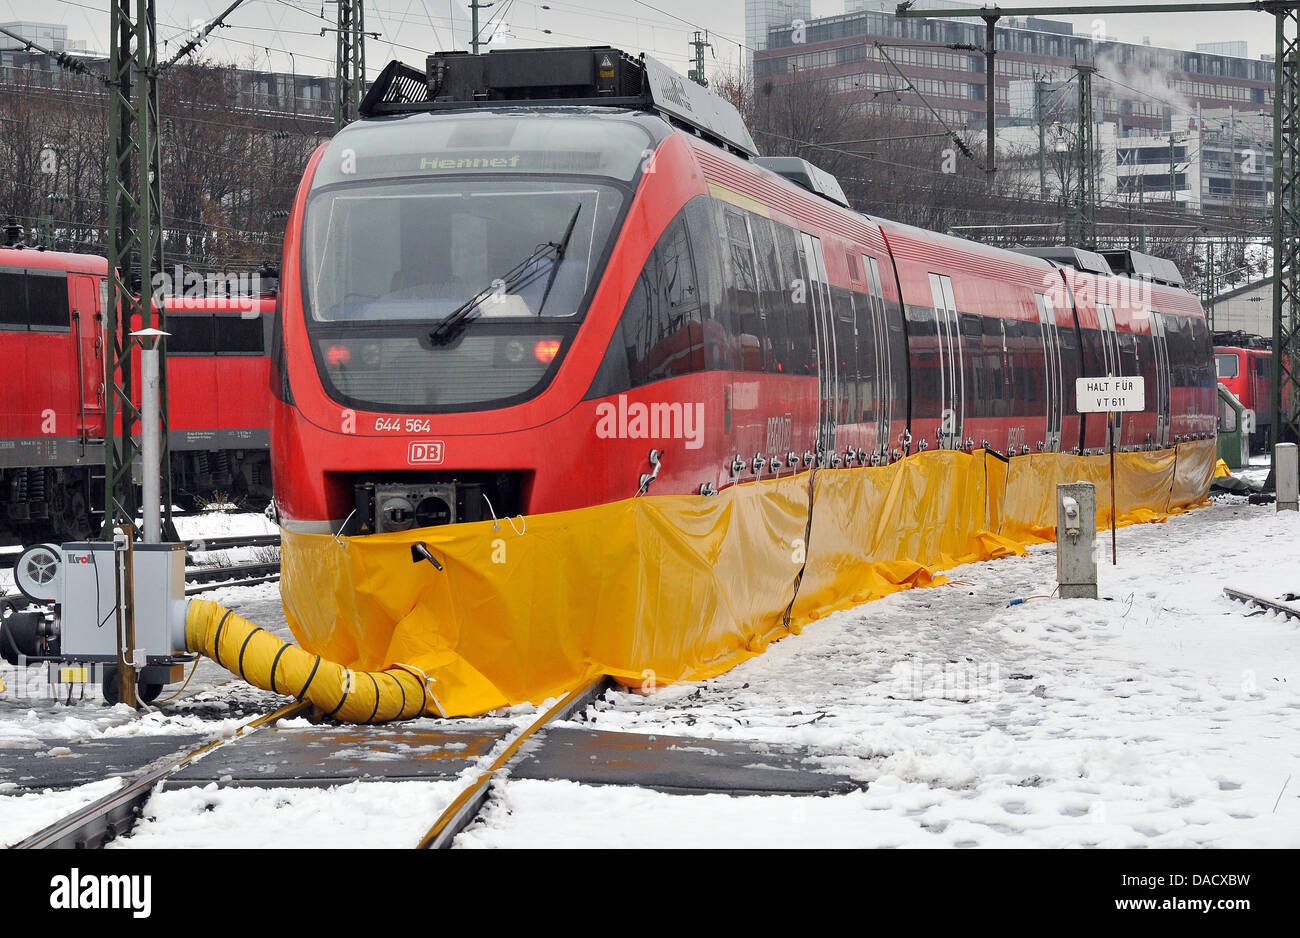 https://c8.alamy.com/comp/DACXBW/a-trainset-of-railway-company-deutsche-bahn-stands-in-an-depot-of-DACXBW.jpg